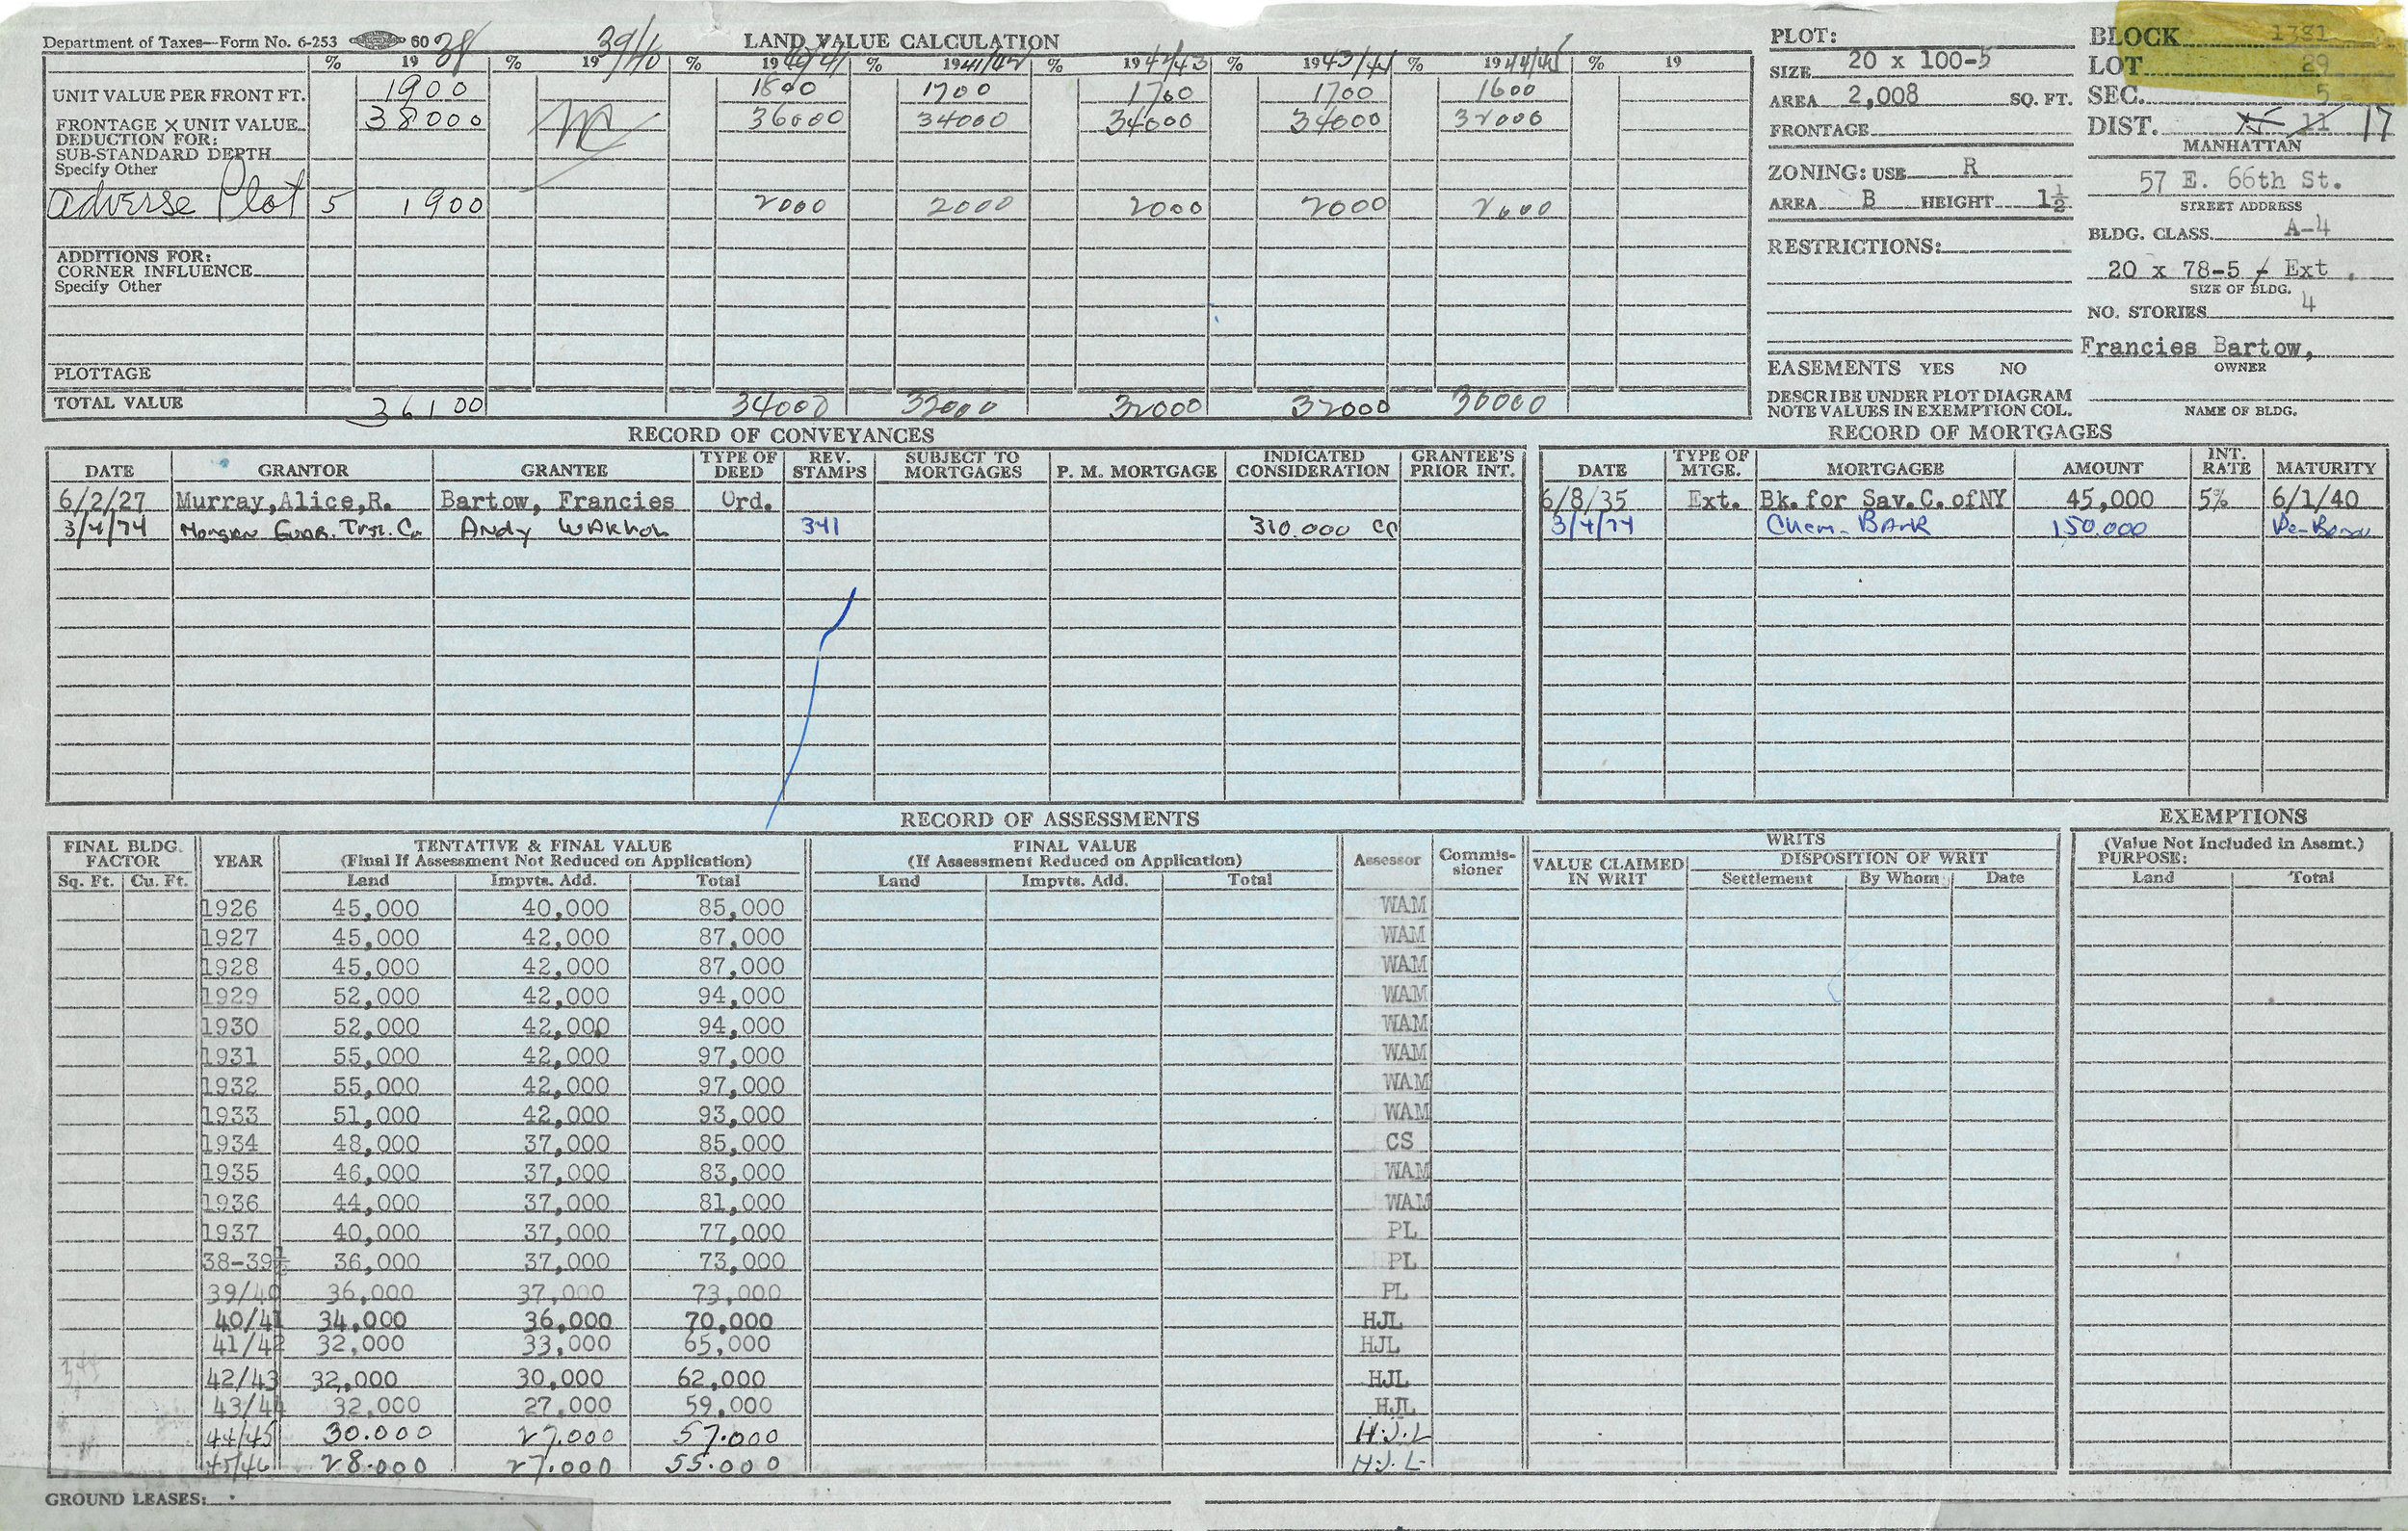 """Warhol's name appears on the Department of Finance """"property card"""" record for 57 E. 66th Street, Manhattan Block 1381, Lot 29, in the conveyance section, acquiring title to the townhouse on March 4, 1974. Department of Finance Collection, NYC Municipal Archives."""